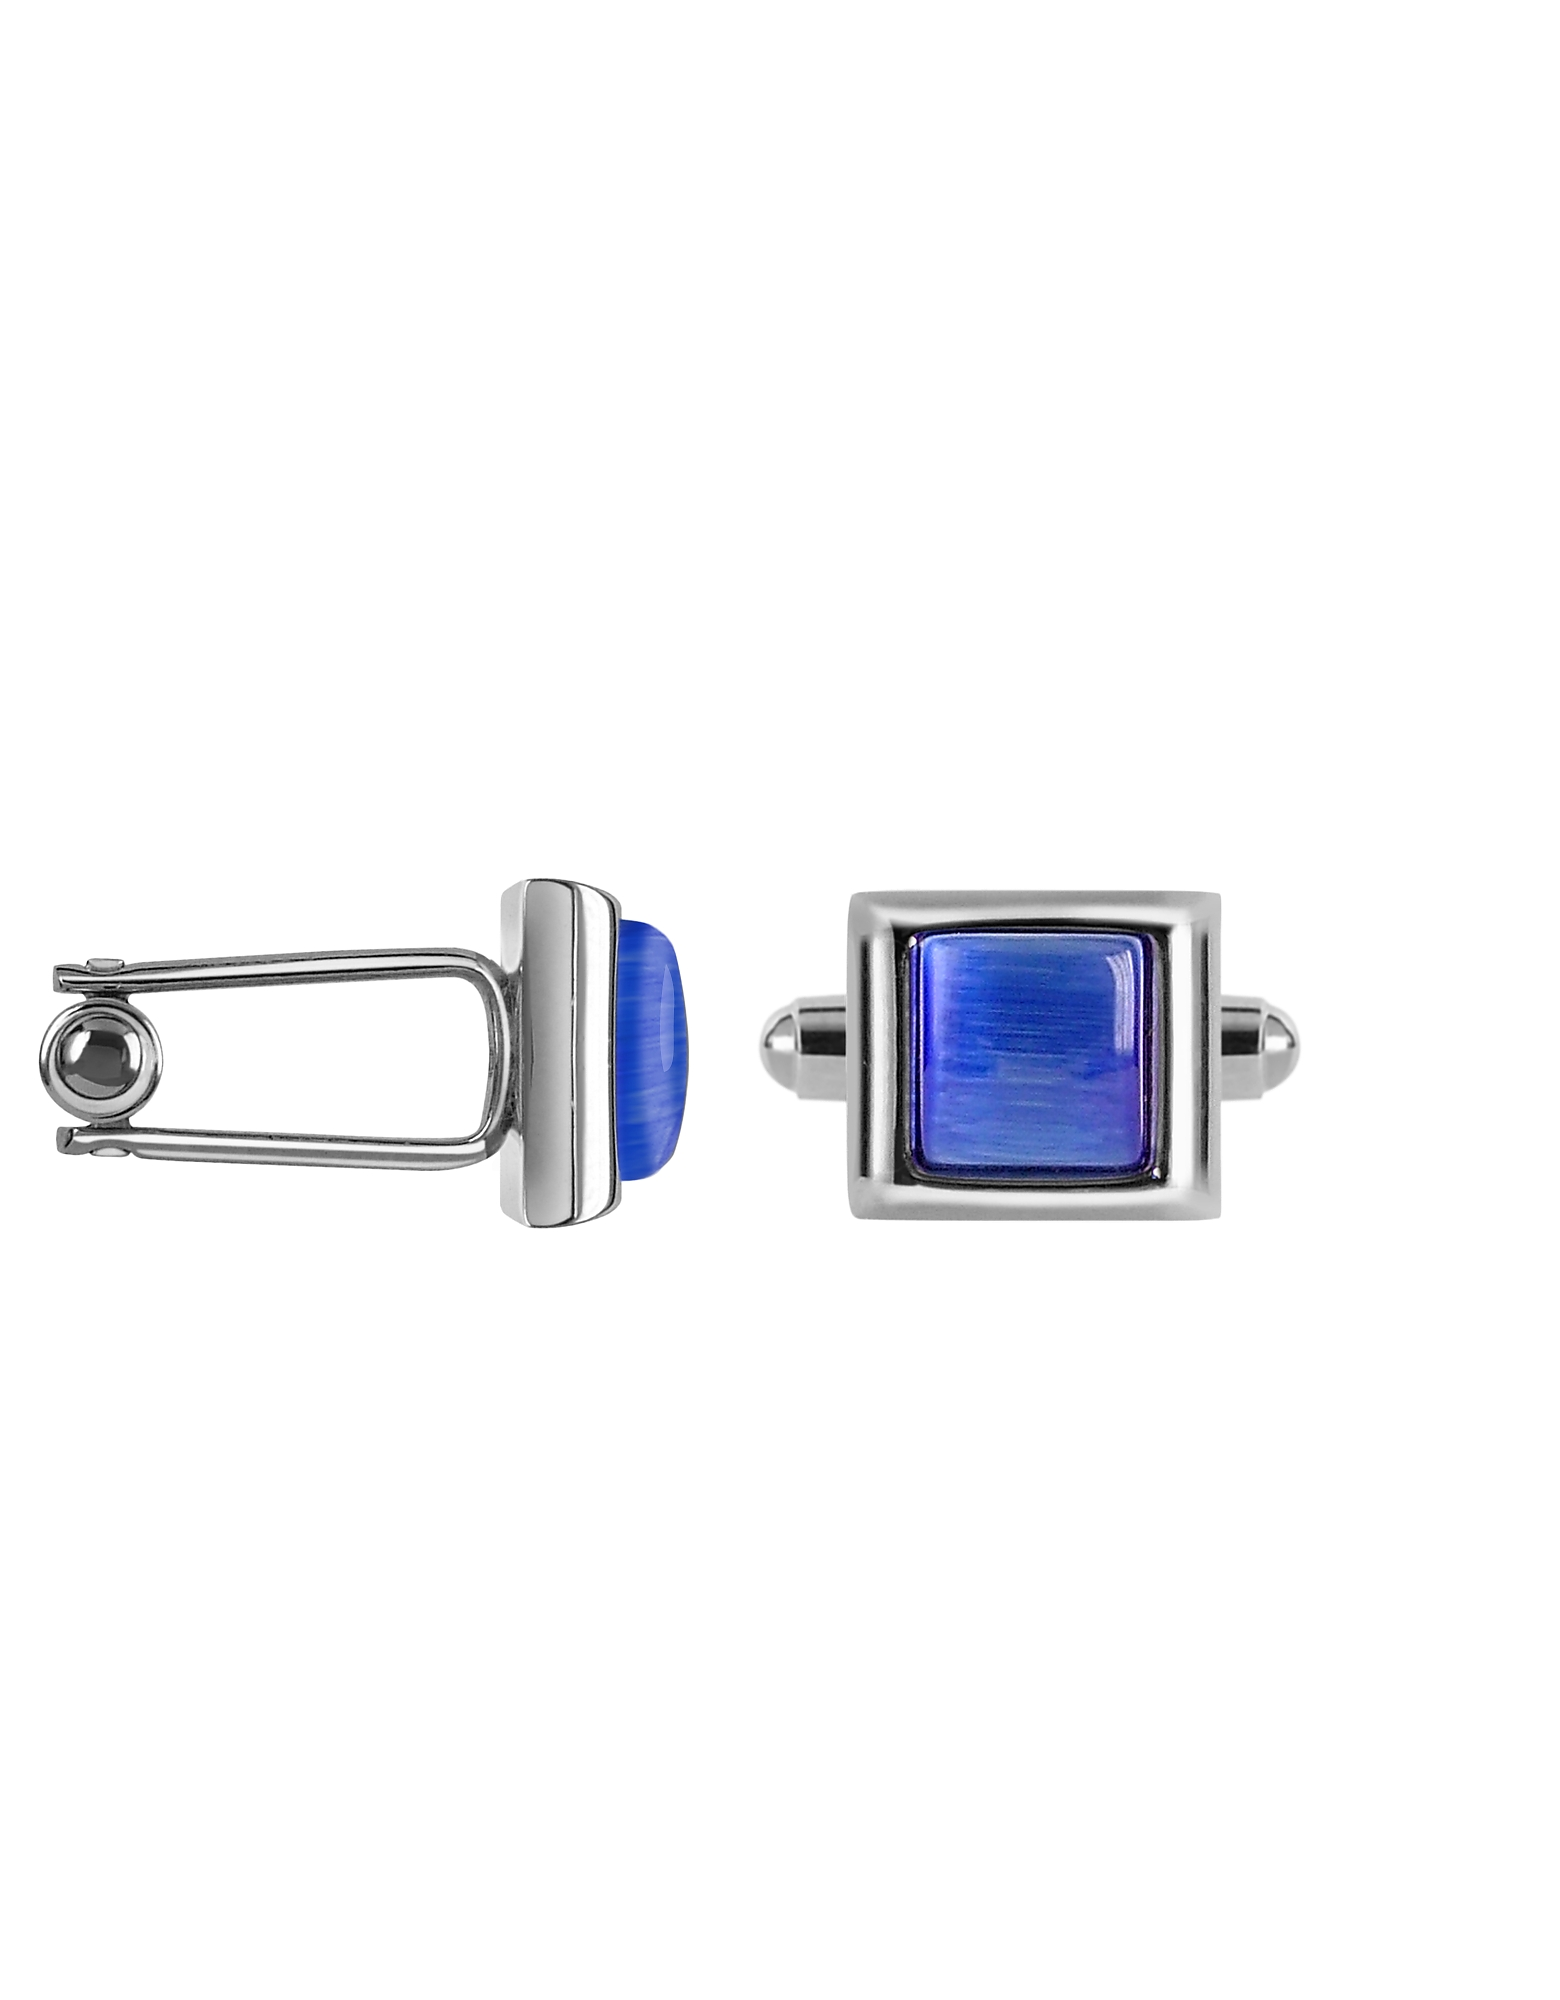 Forzieri Designer Cufflinks, Cat's eye - Blue Silver Plated Cuff links